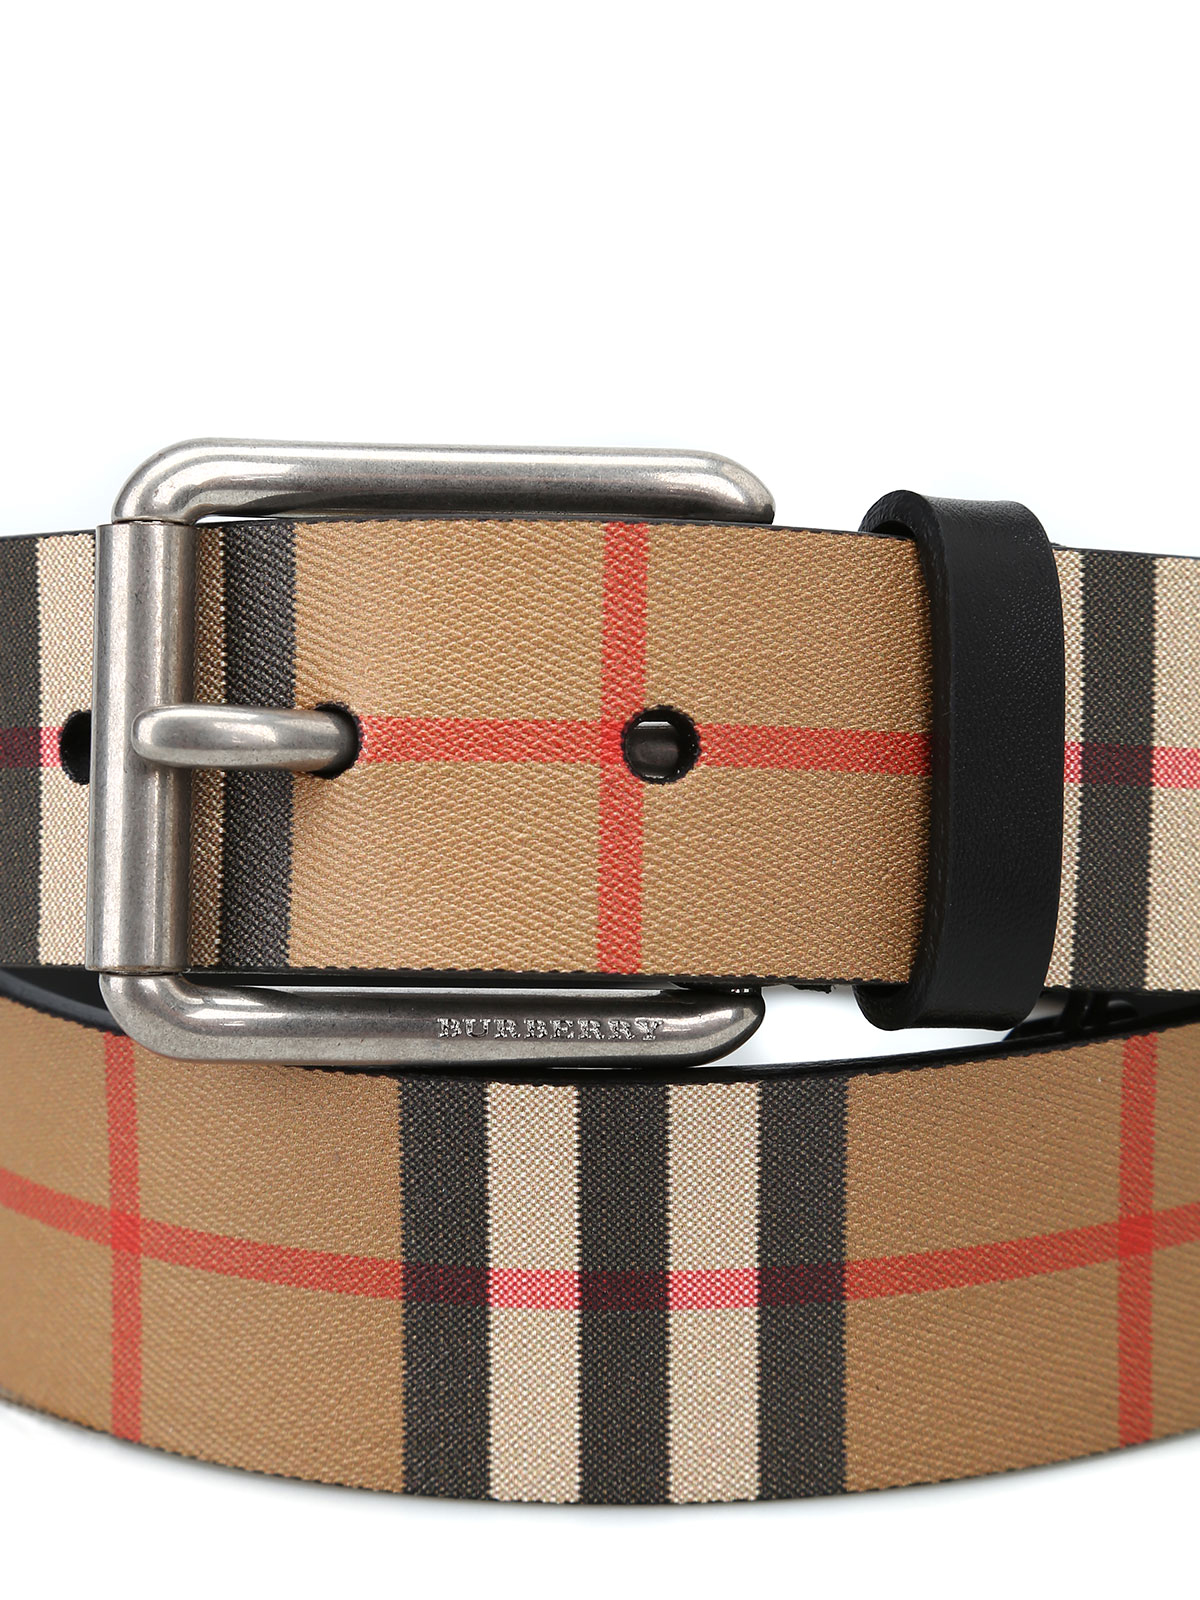 89d33c0c6396 Burberry - Mark35 Vintage check black leather belt - belts - 4074824